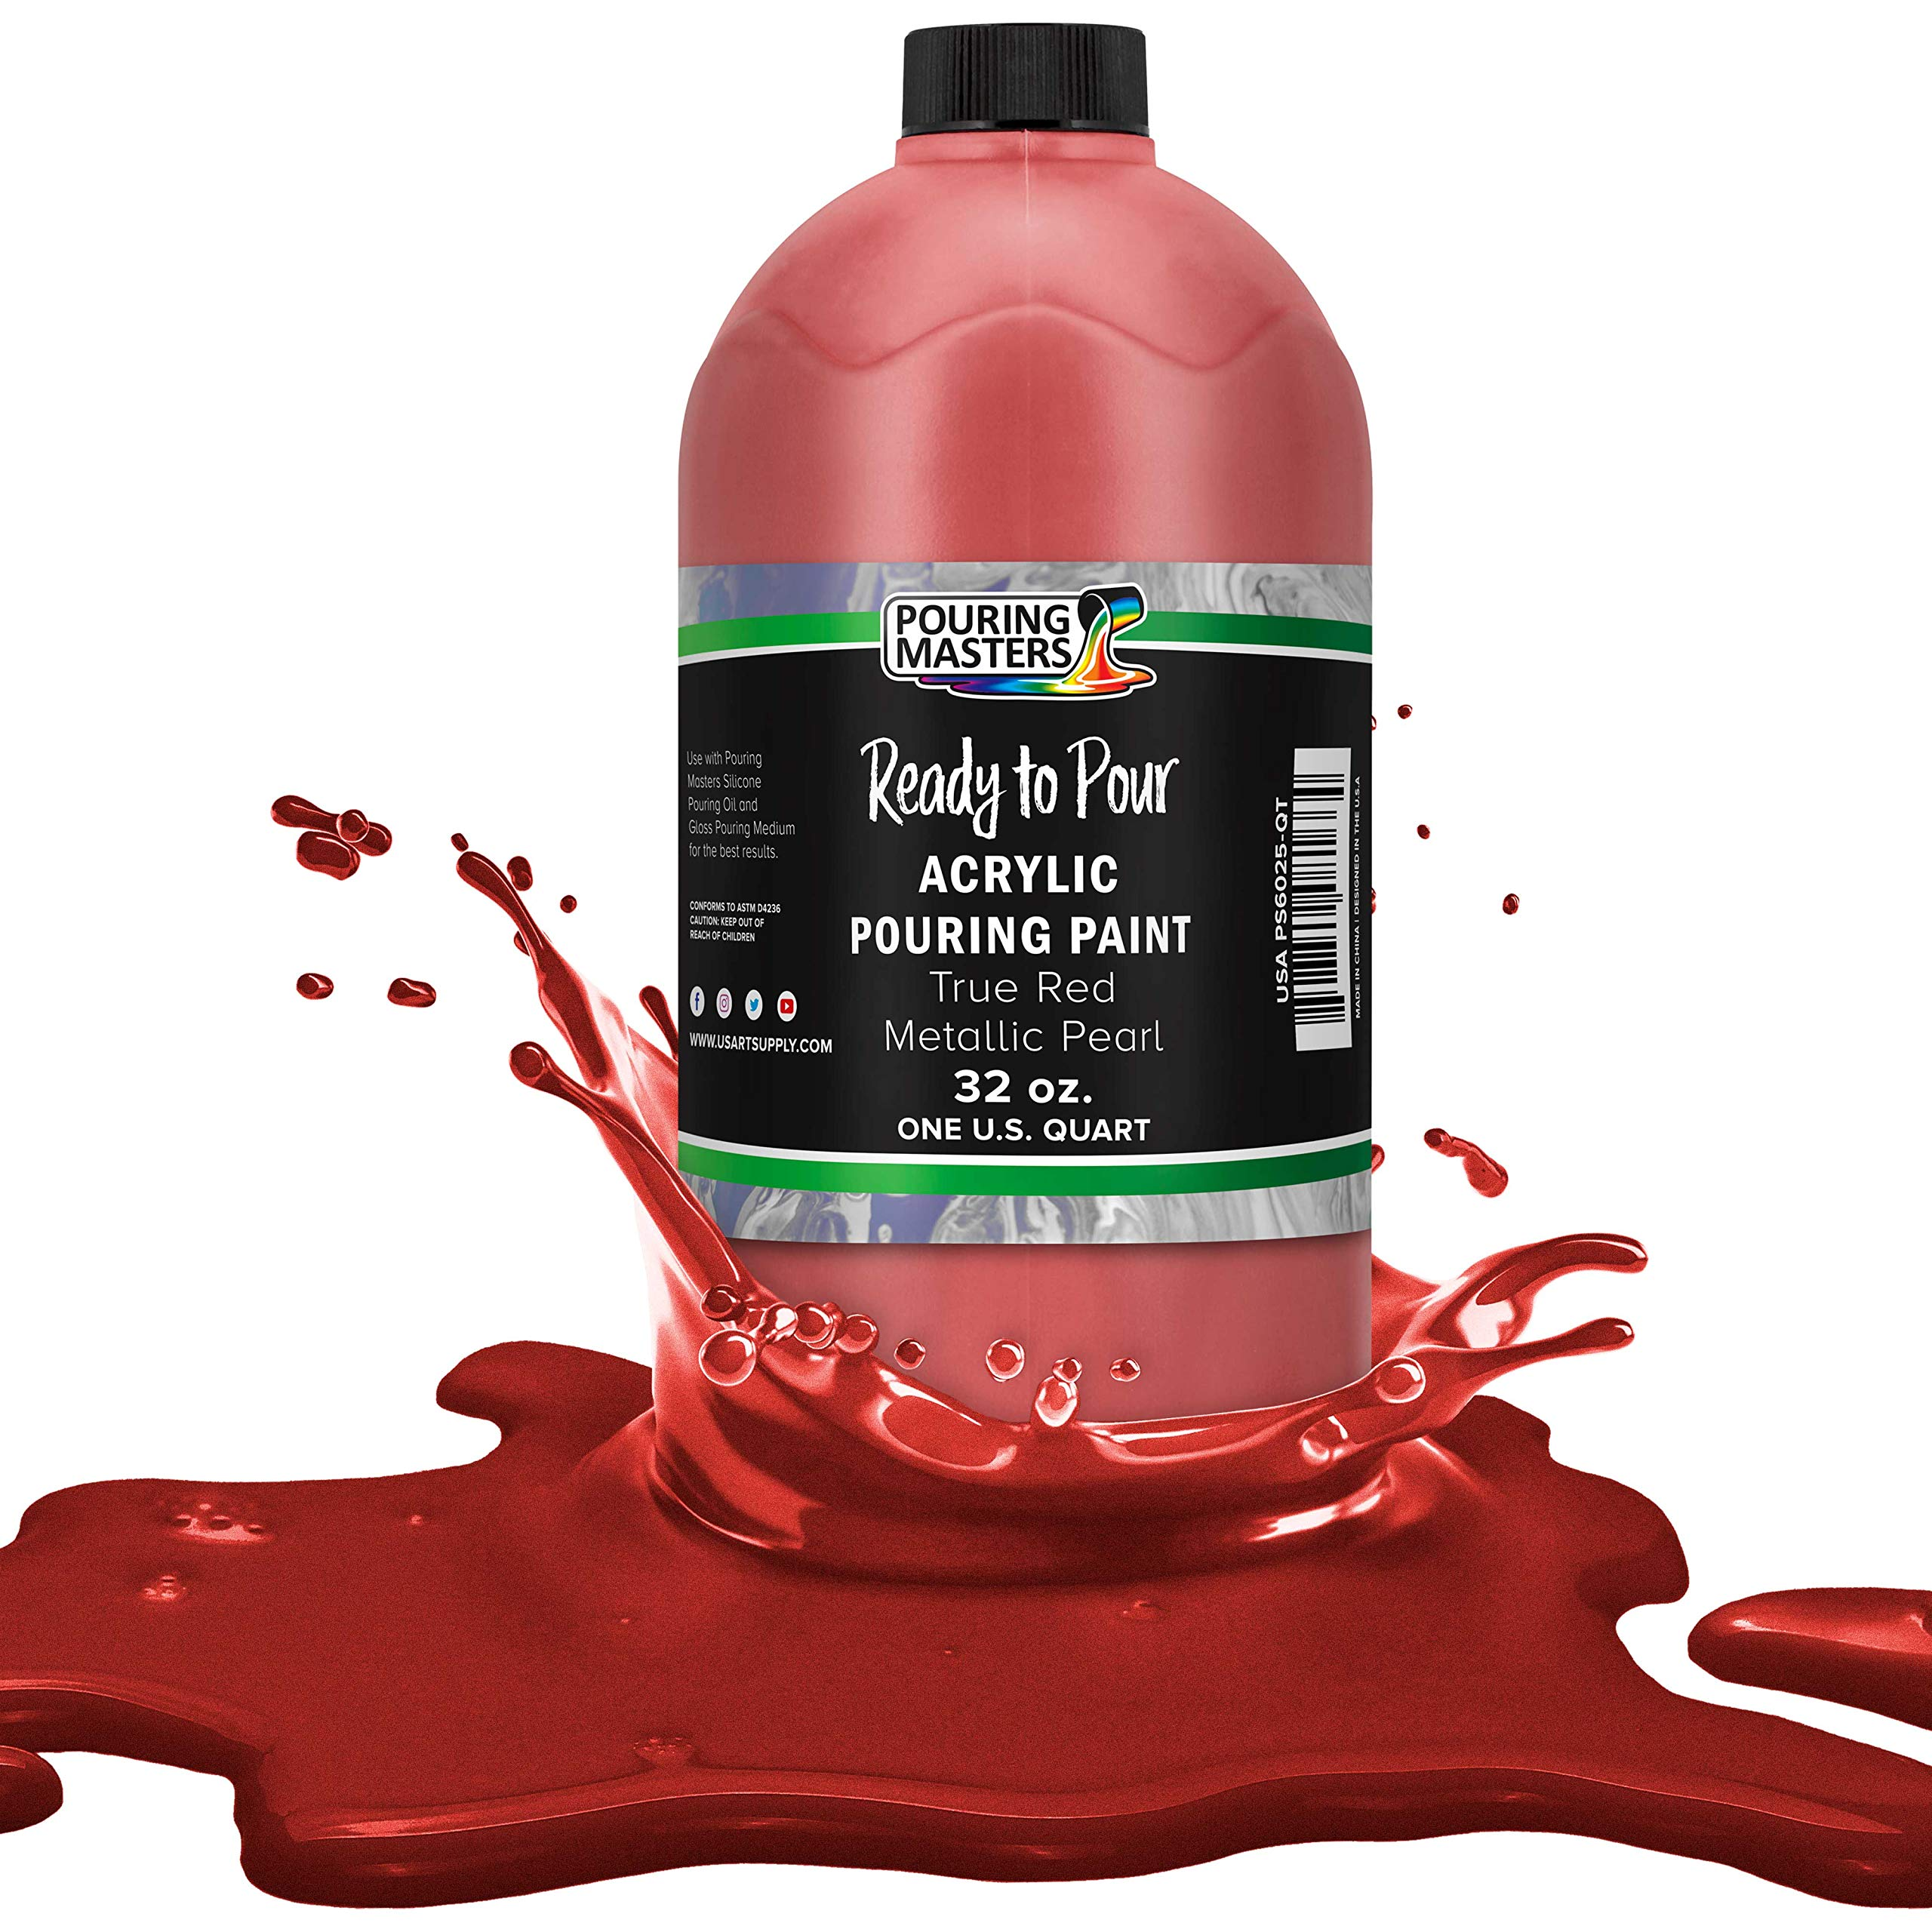 Pouring Masters True Red Metallic Pearl Acrylic Ready to Pour Pouring Paint – Premium 32-Ounce Pre-Mixed Water-Based - for Canvas, Wood, Paper, Crafts, Tile, Rocks and More